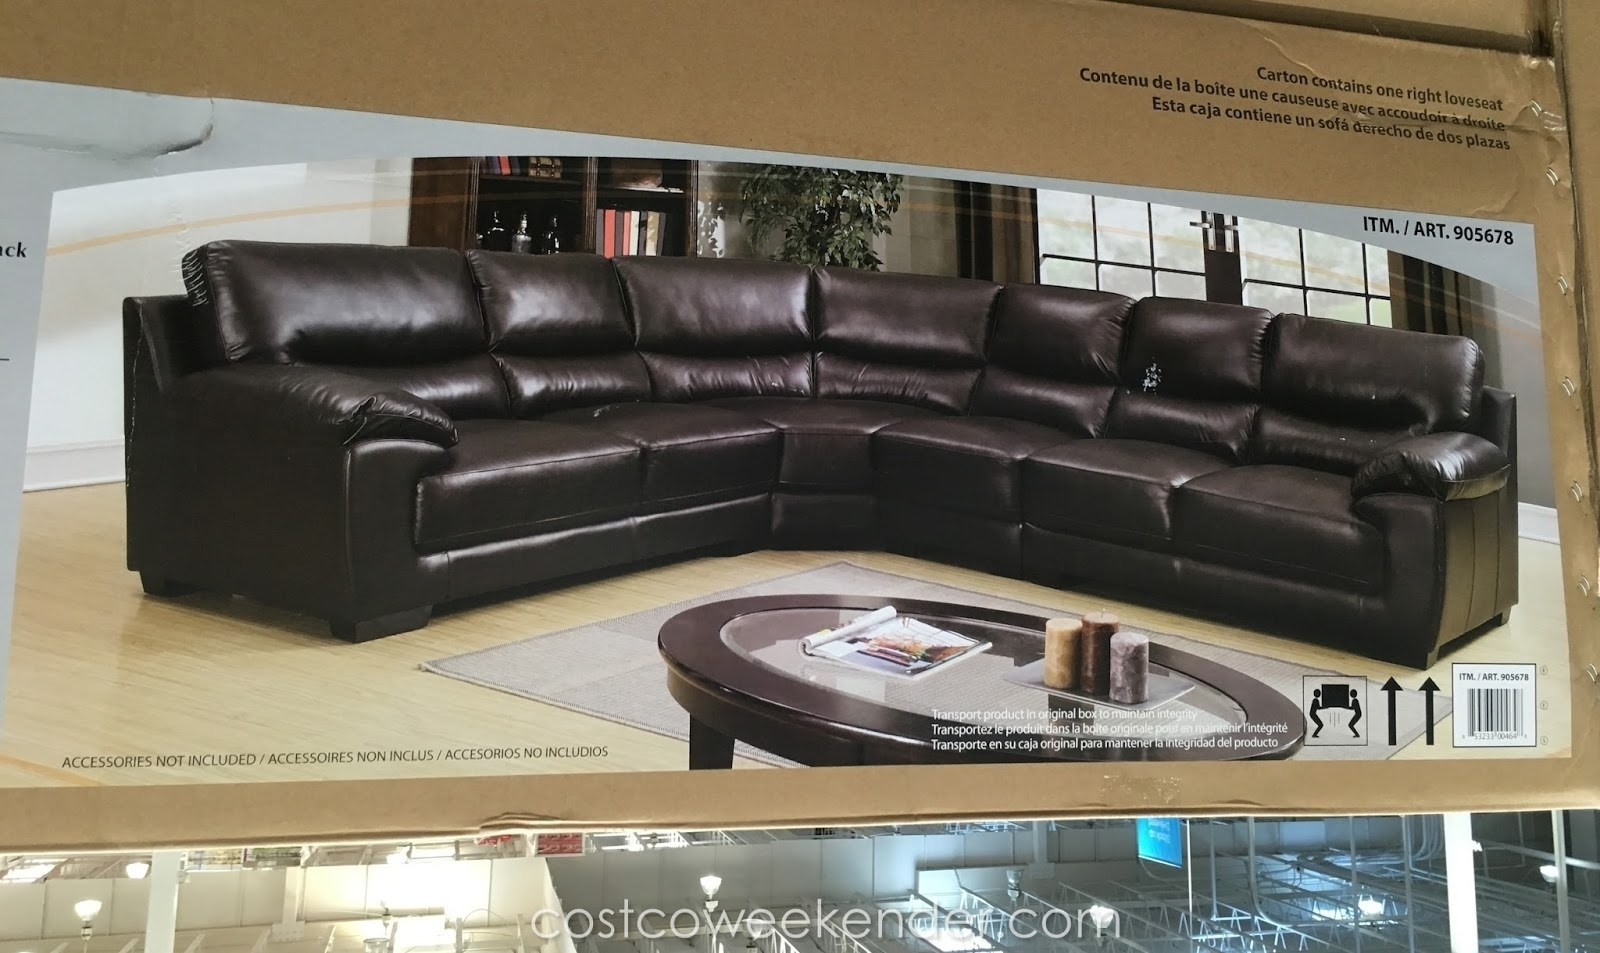 Marks & Cohen Colton Leather Sectional | Costco Weekender pertaining to Cohen Down 2 Piece Sectionals (Image 18 of 30)